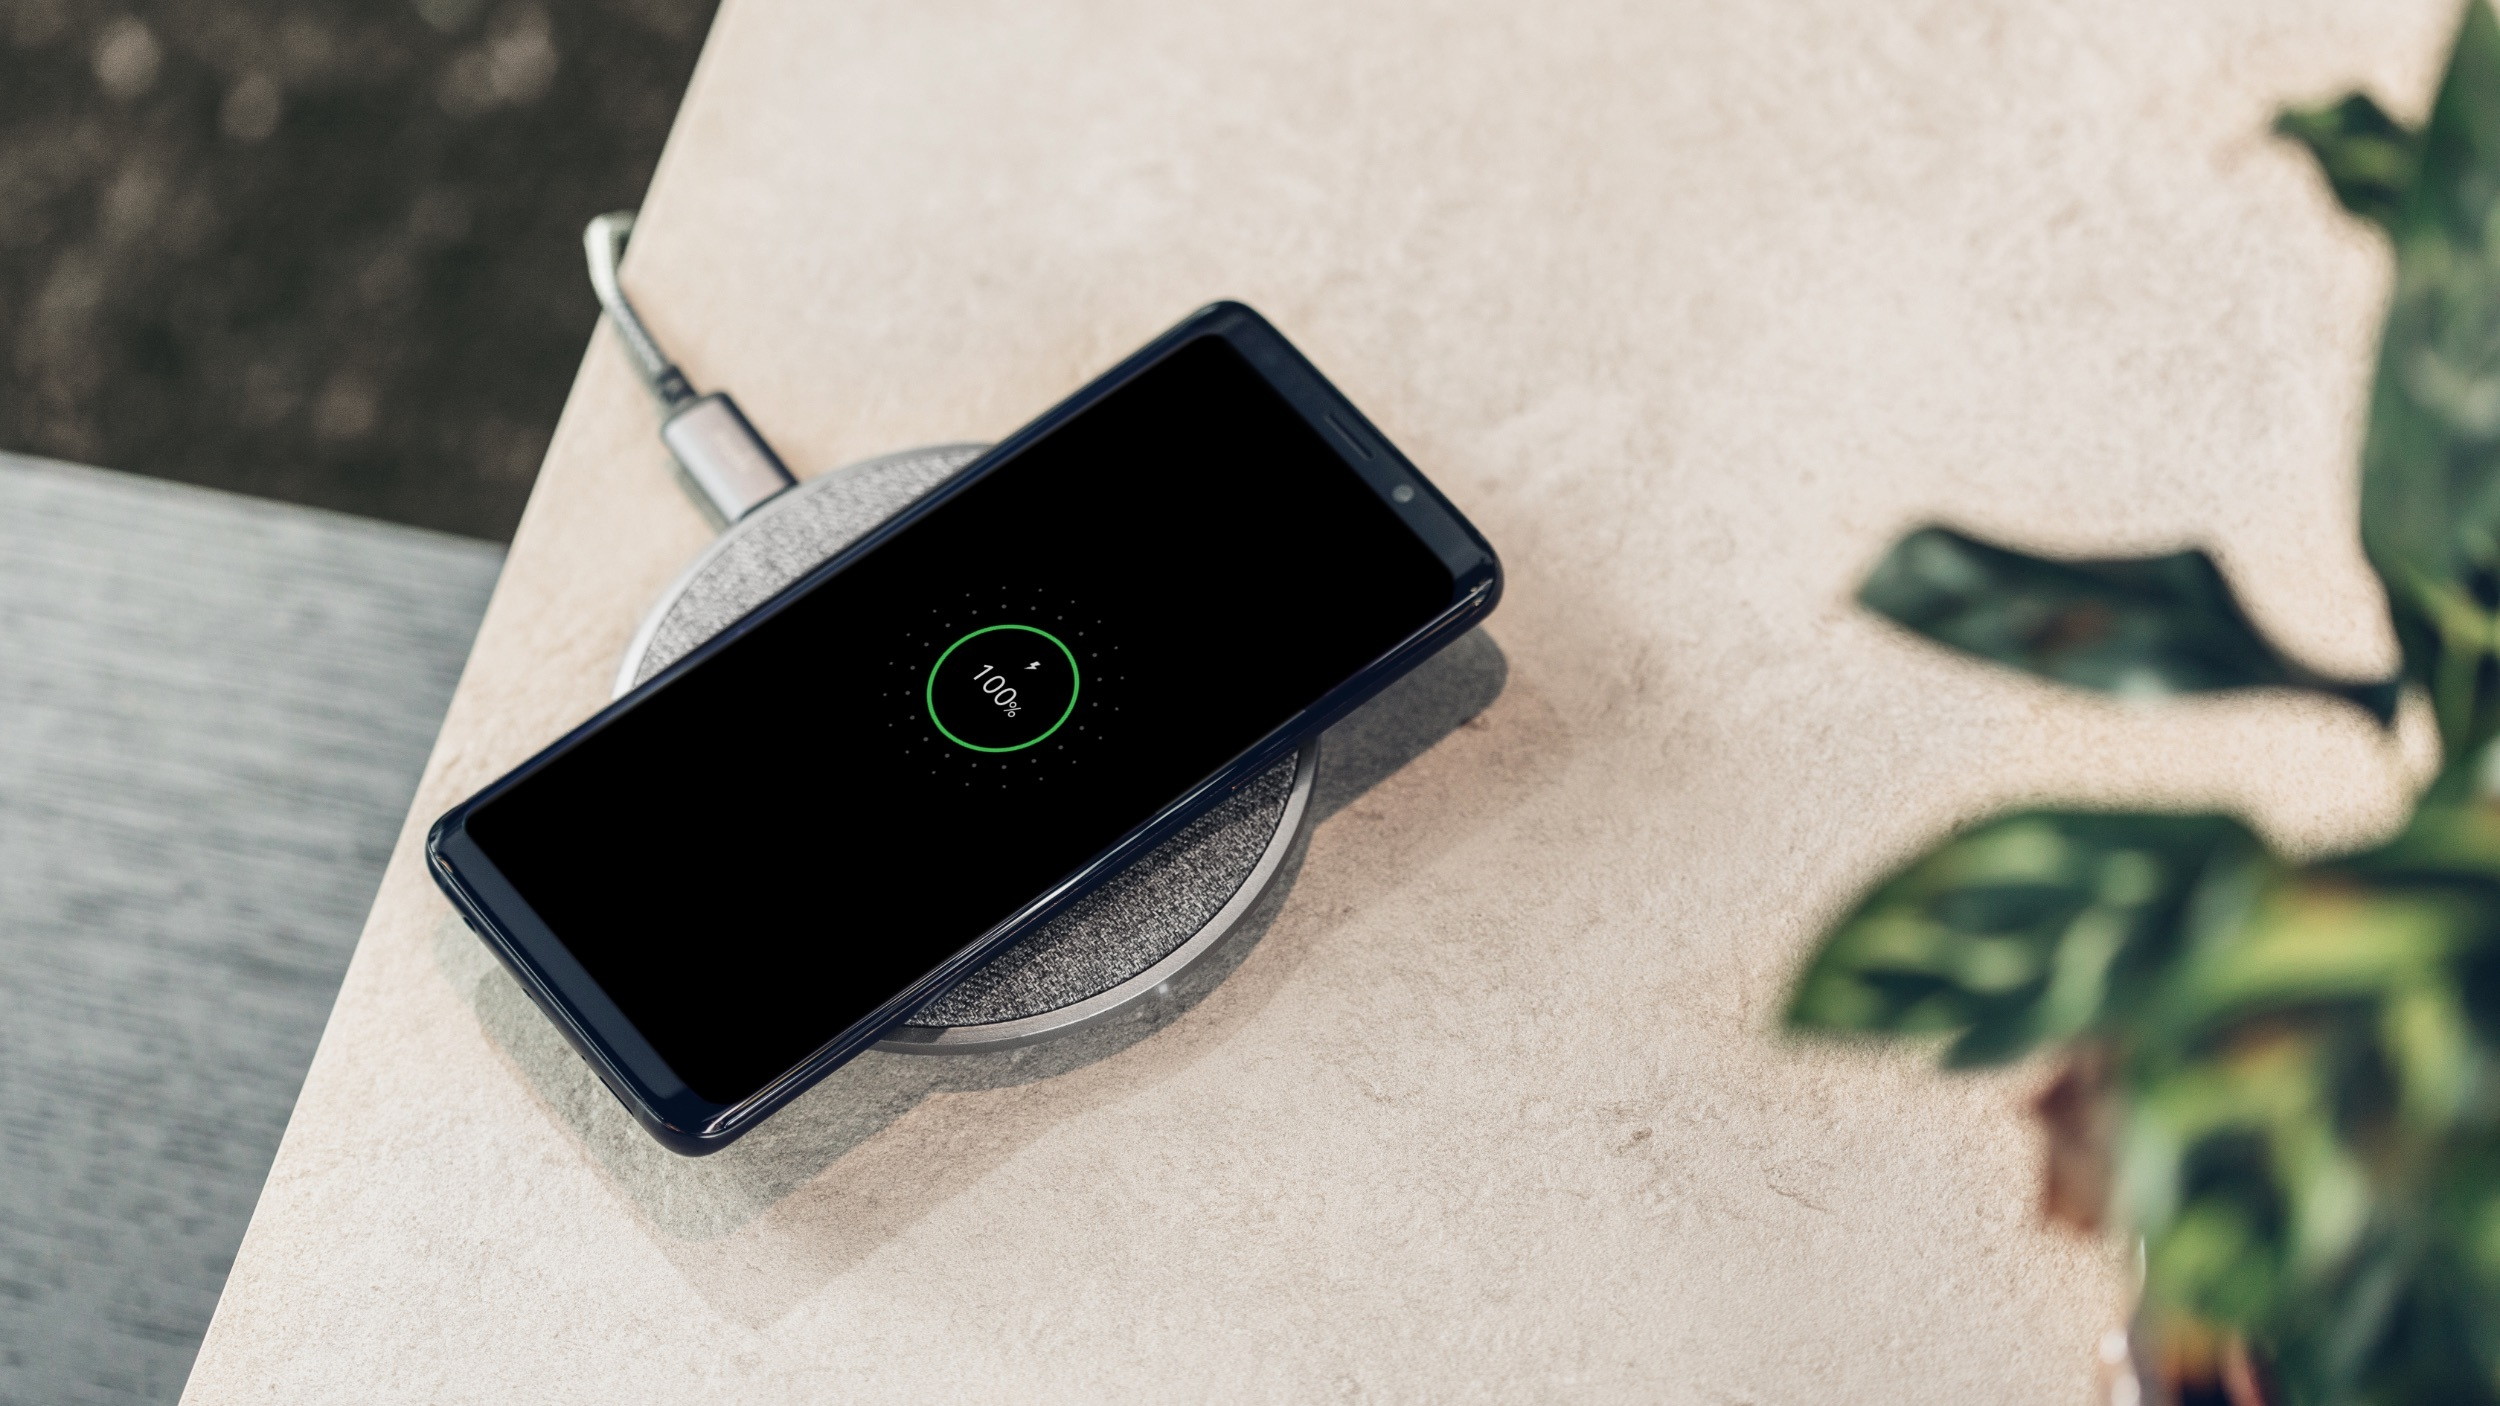 close-up view of a phone charging wirelessly with the screen showing 100% charged